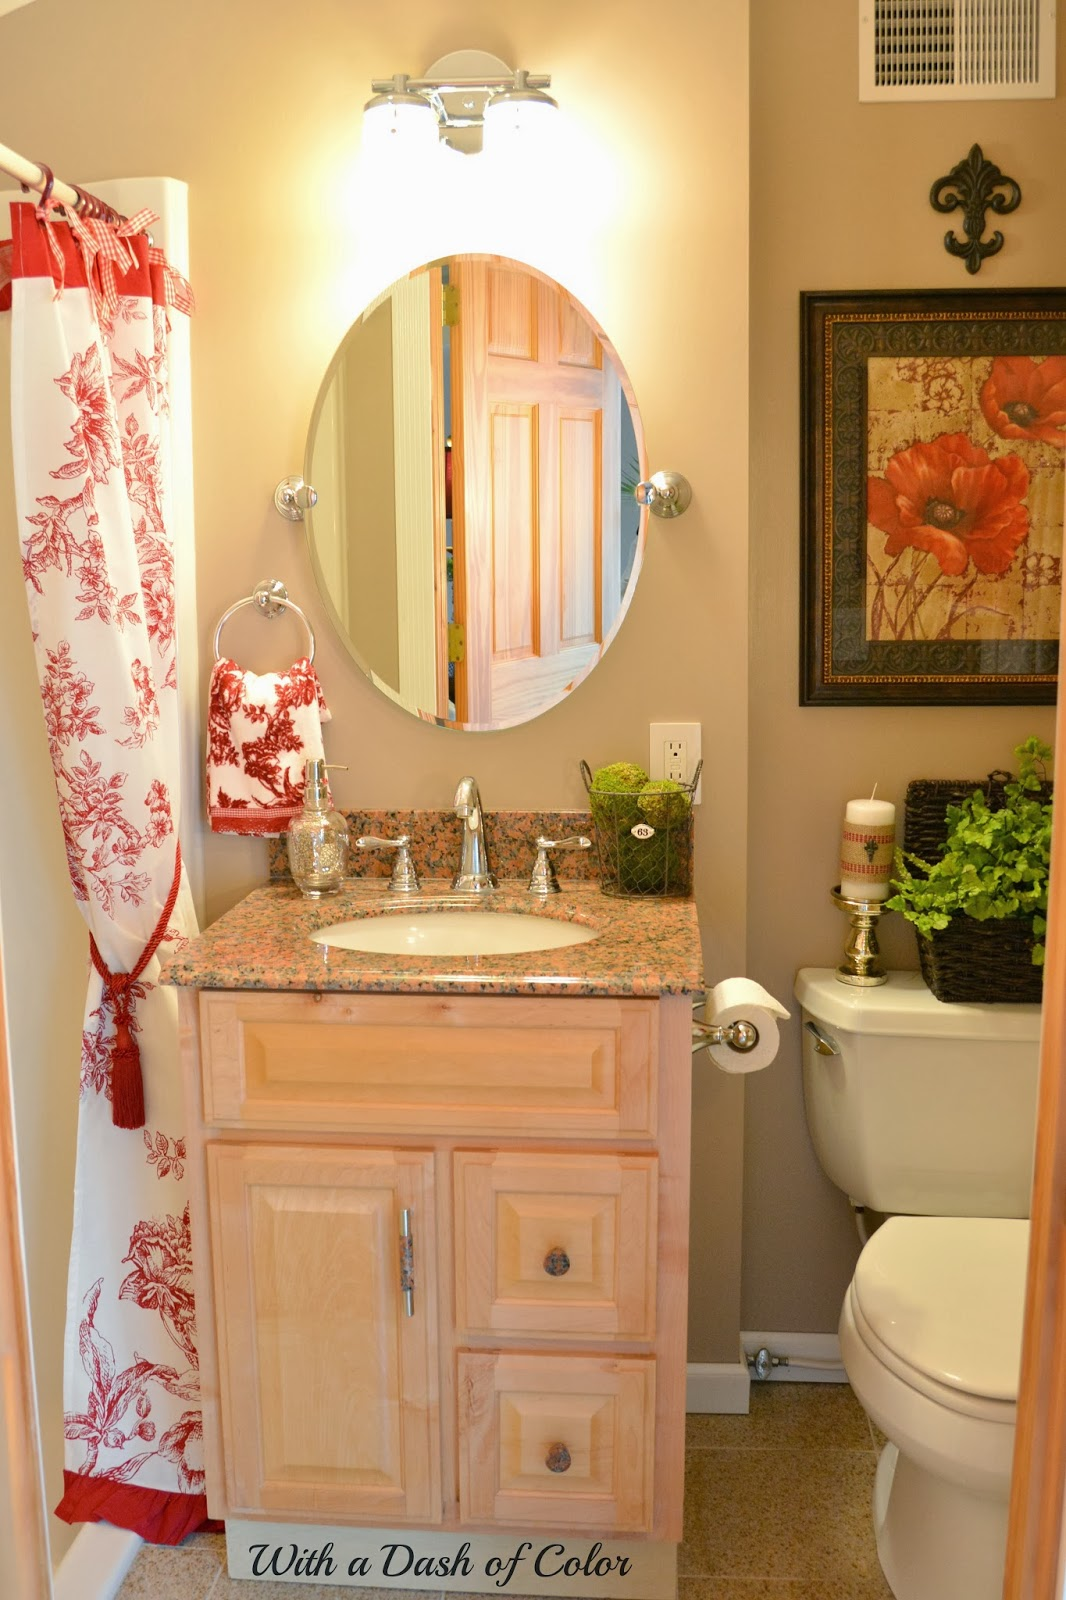 French Country Bathroom Design Hgtv Pictures Ideas: With A Dash Of Color: French Country Bathroom